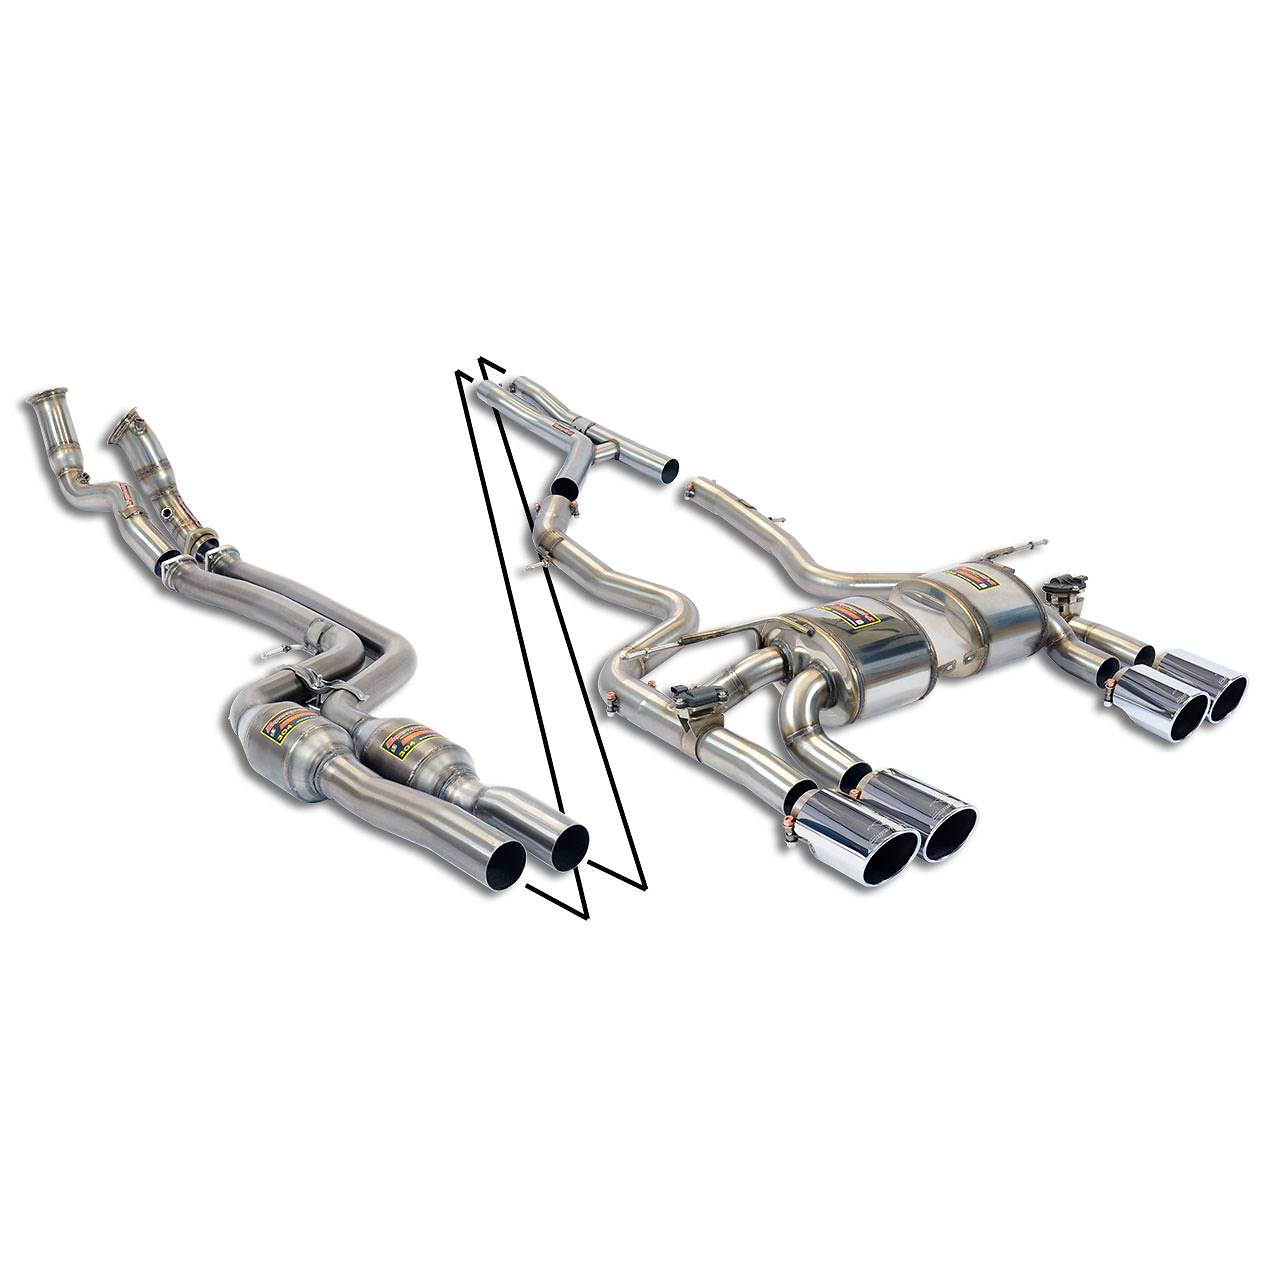 Performance Sport Exhaust For BMW F82 M4 Coupè, BMW F82 M4